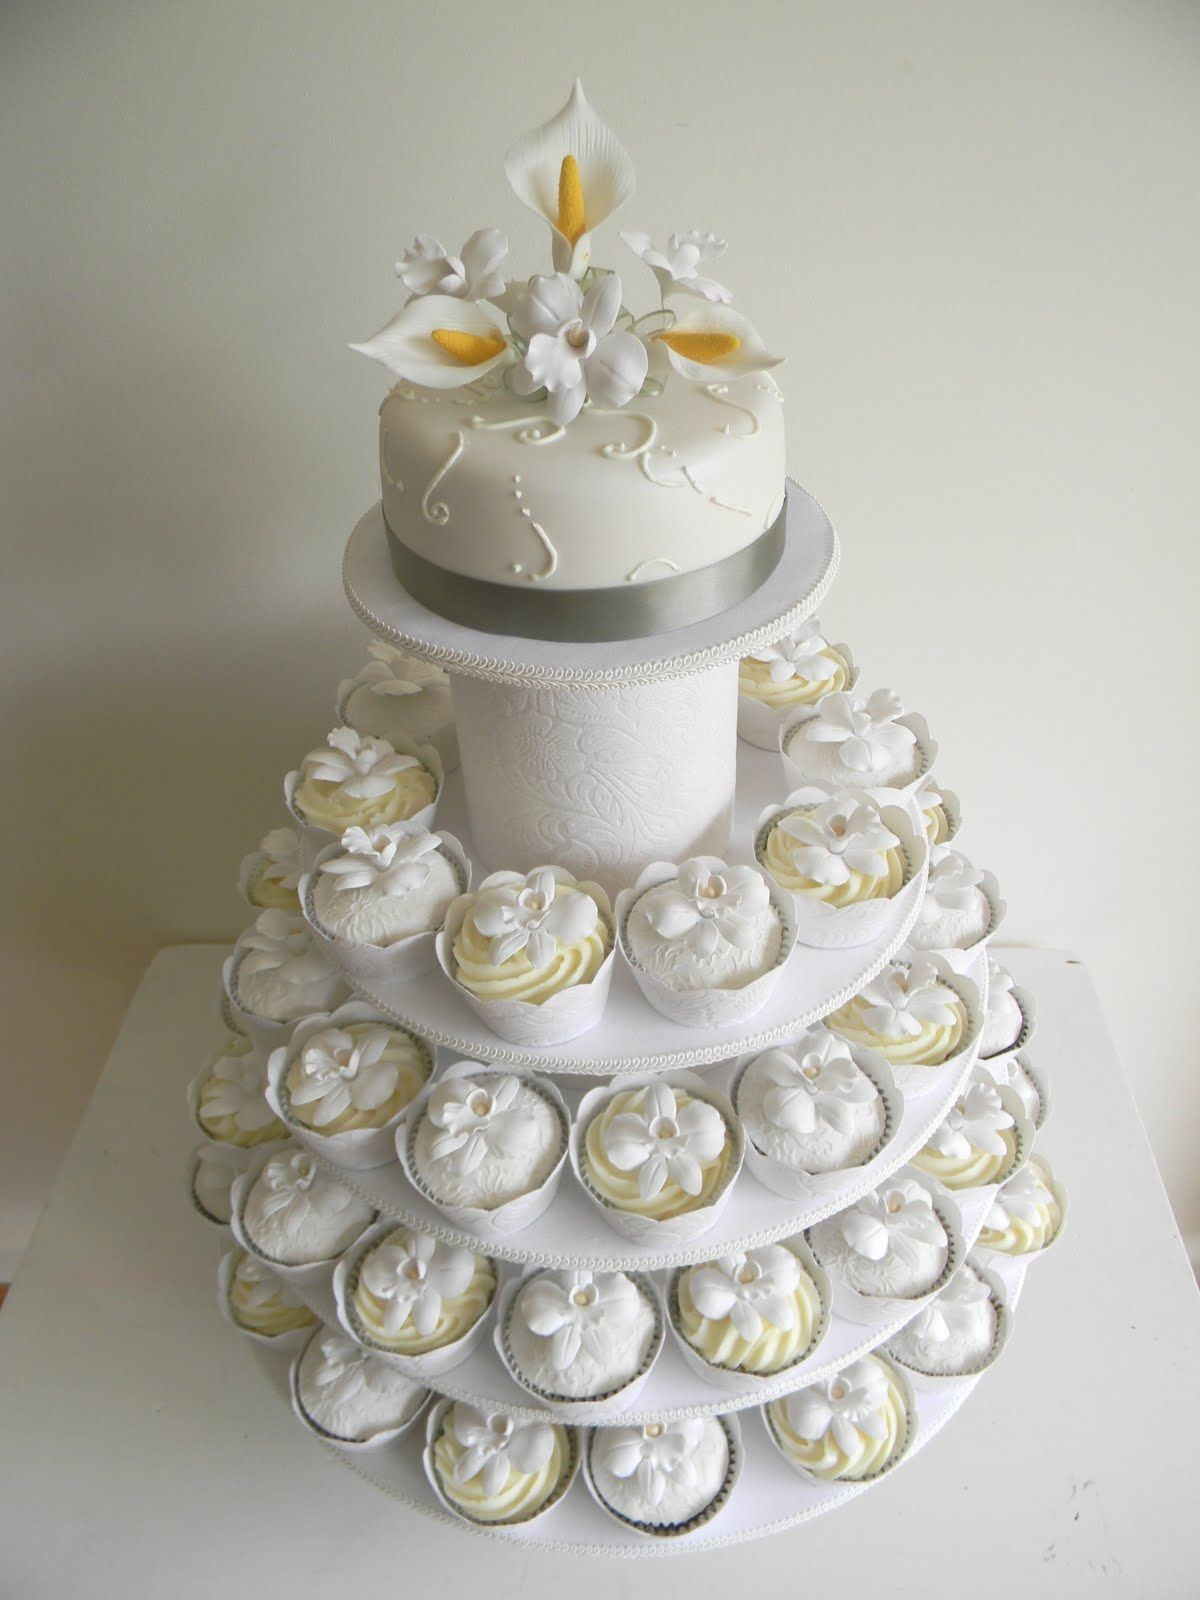 Cupcakes Are So Easy To Be Made At Home | Wedding cupcake towers ...